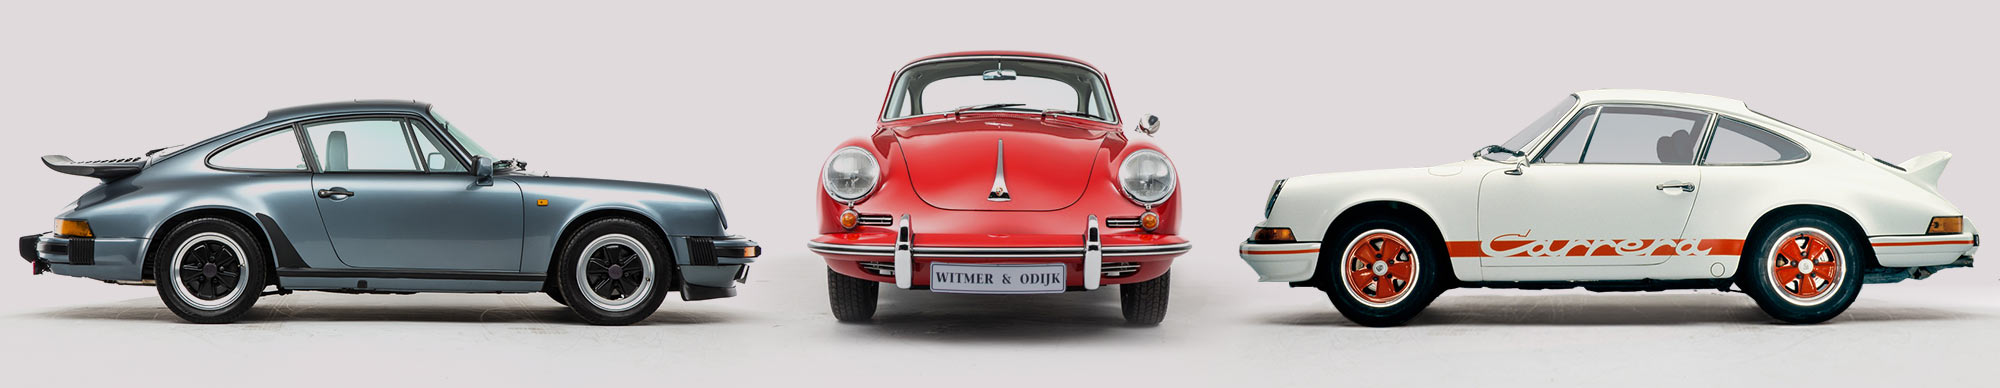 Wanted Air-cooled Porsches